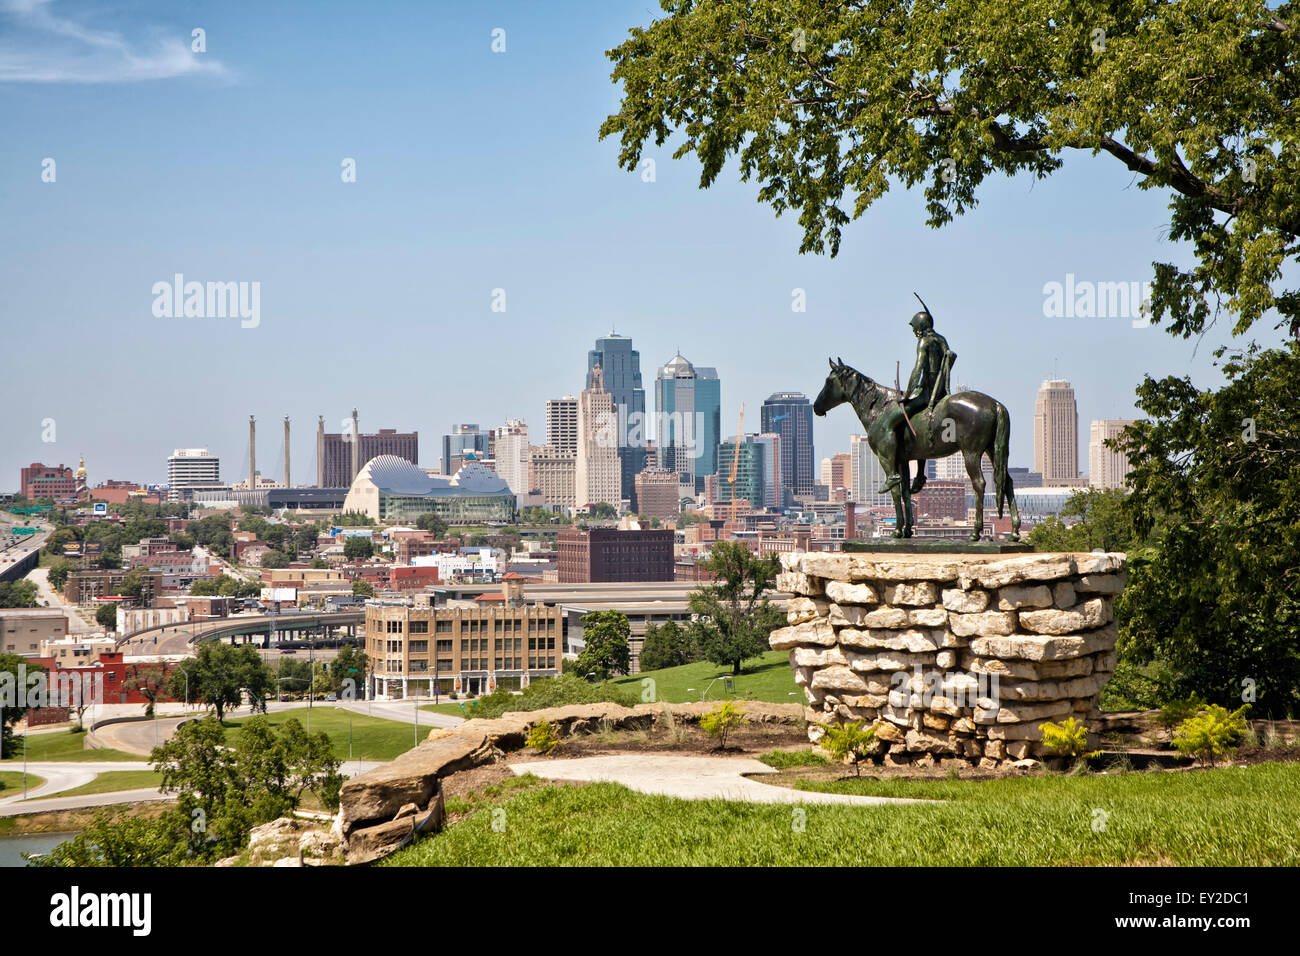 Kansas City, Missouri Skyline and 'The Scout' Statue - Stock Image